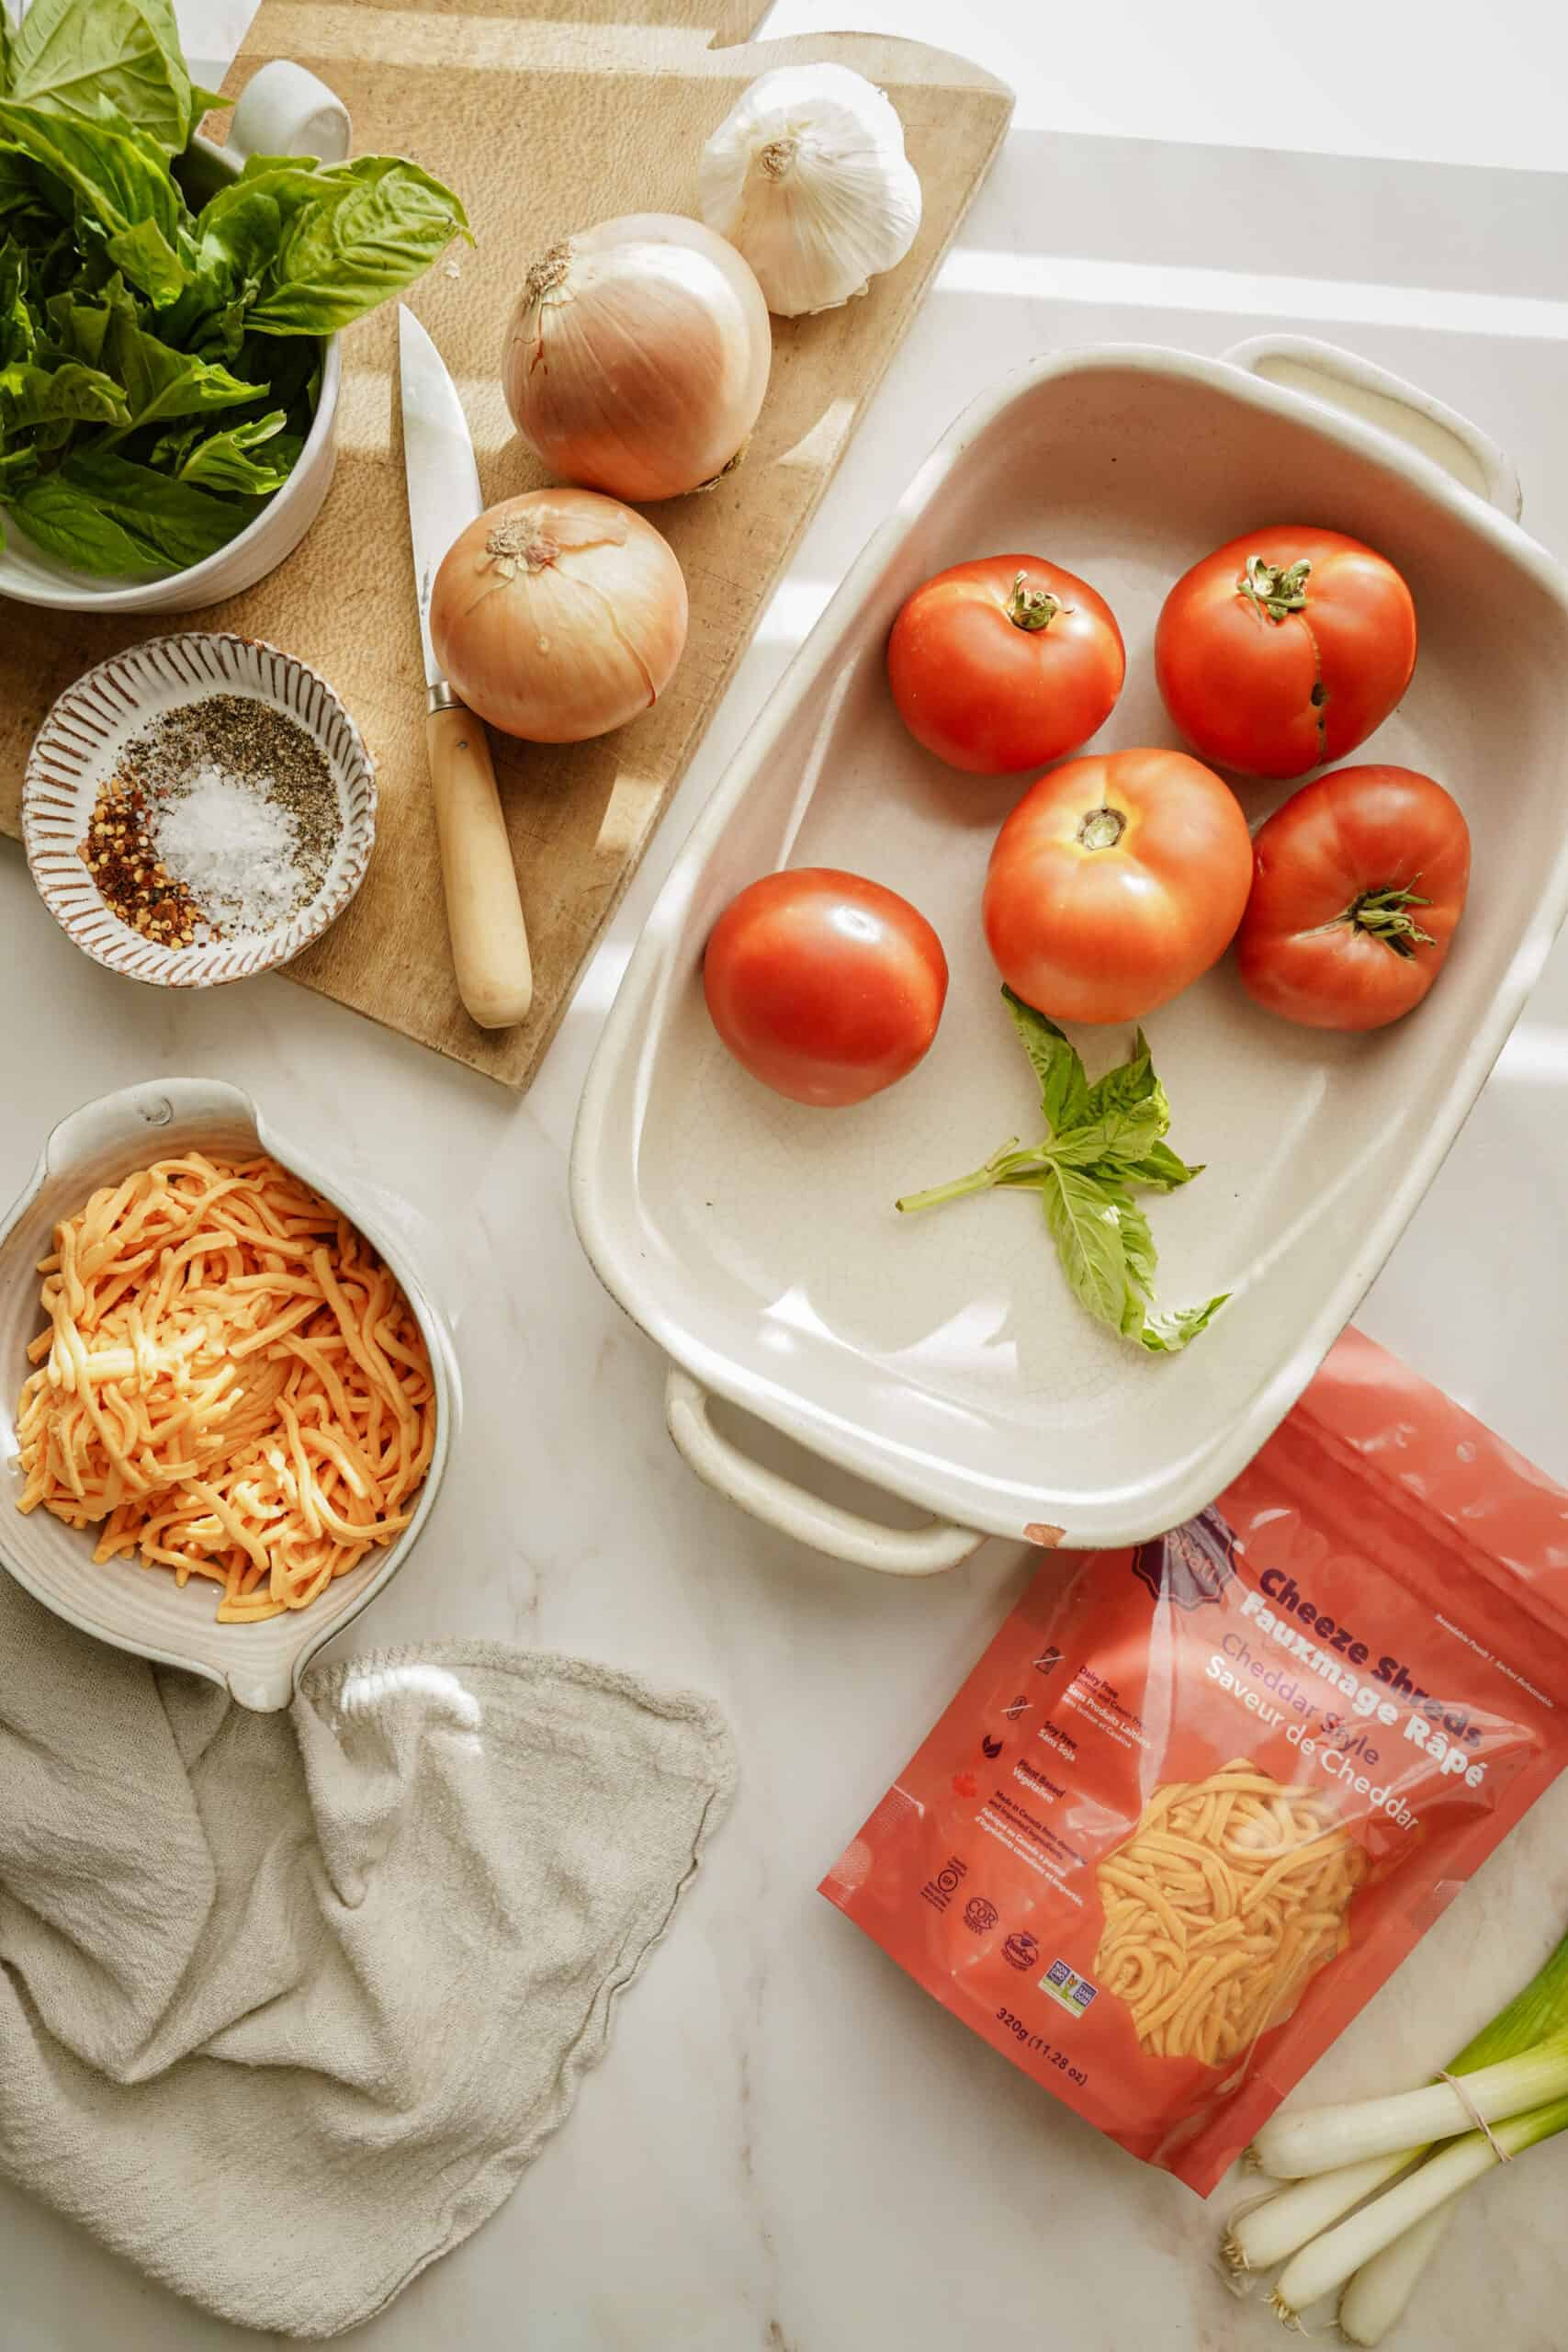 Ingredients for creamy tomato soup in a casserole dish